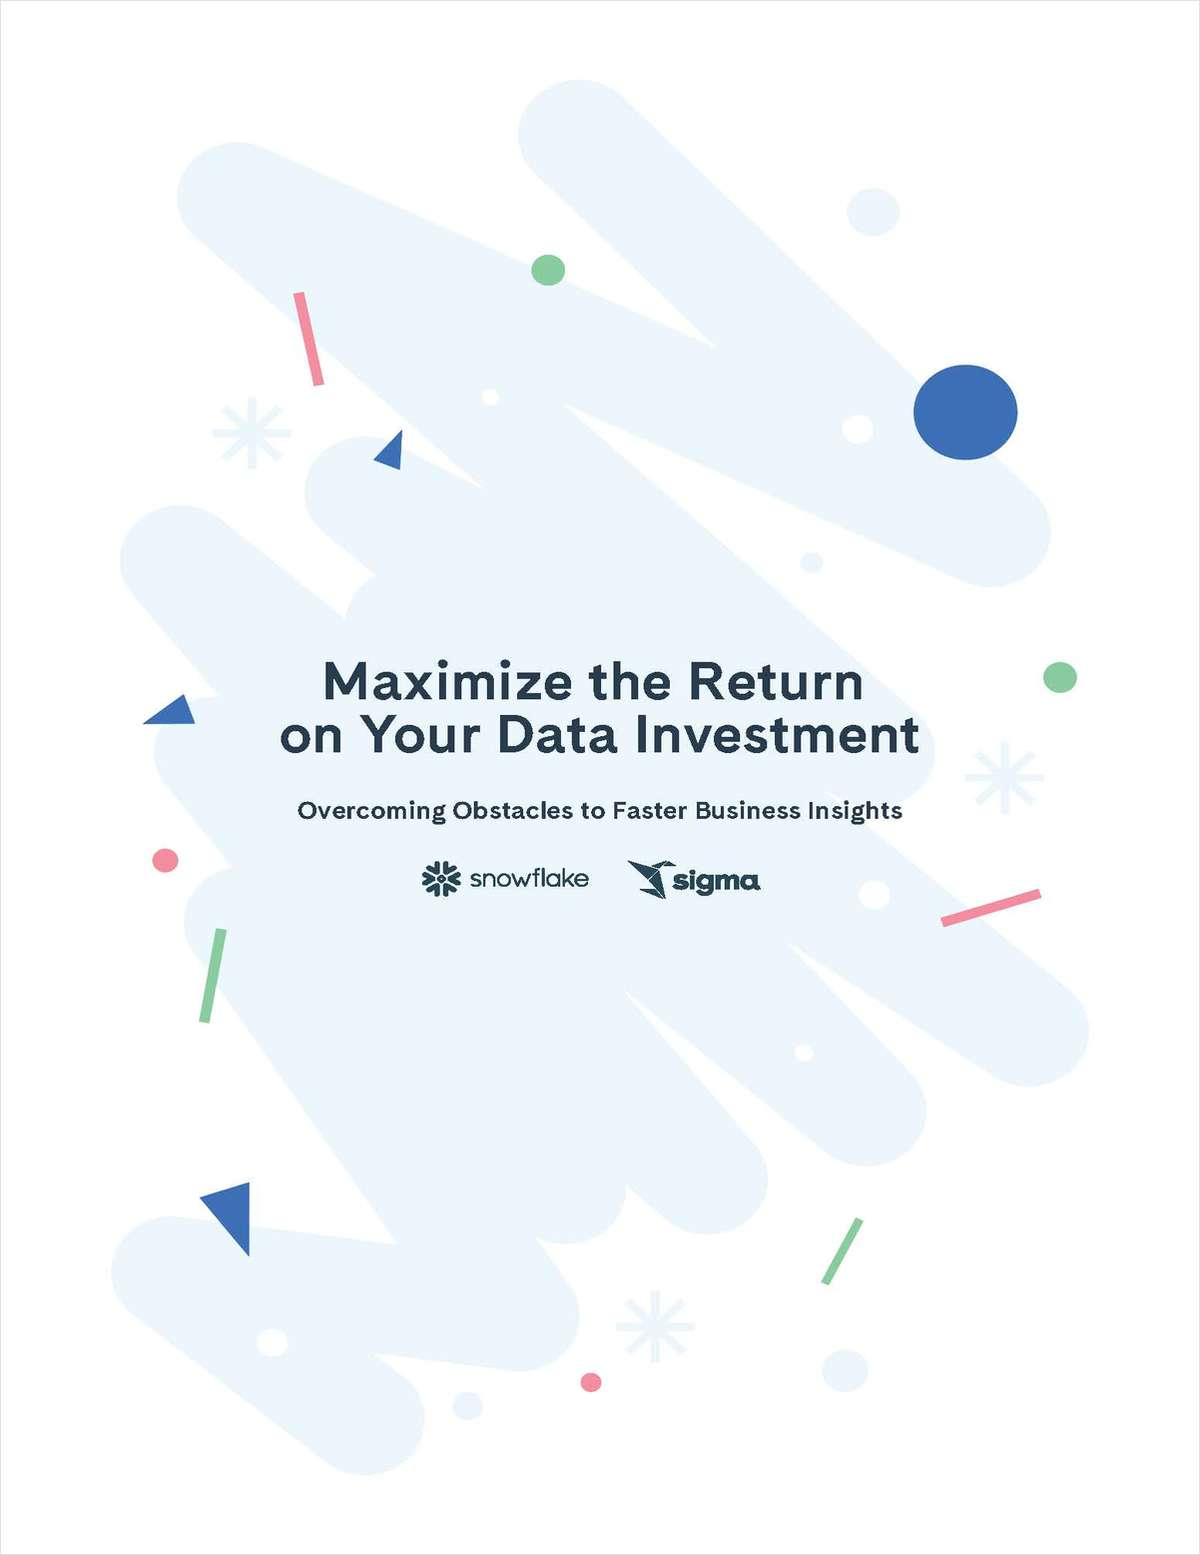 Maximize the Return on Your Data Investment